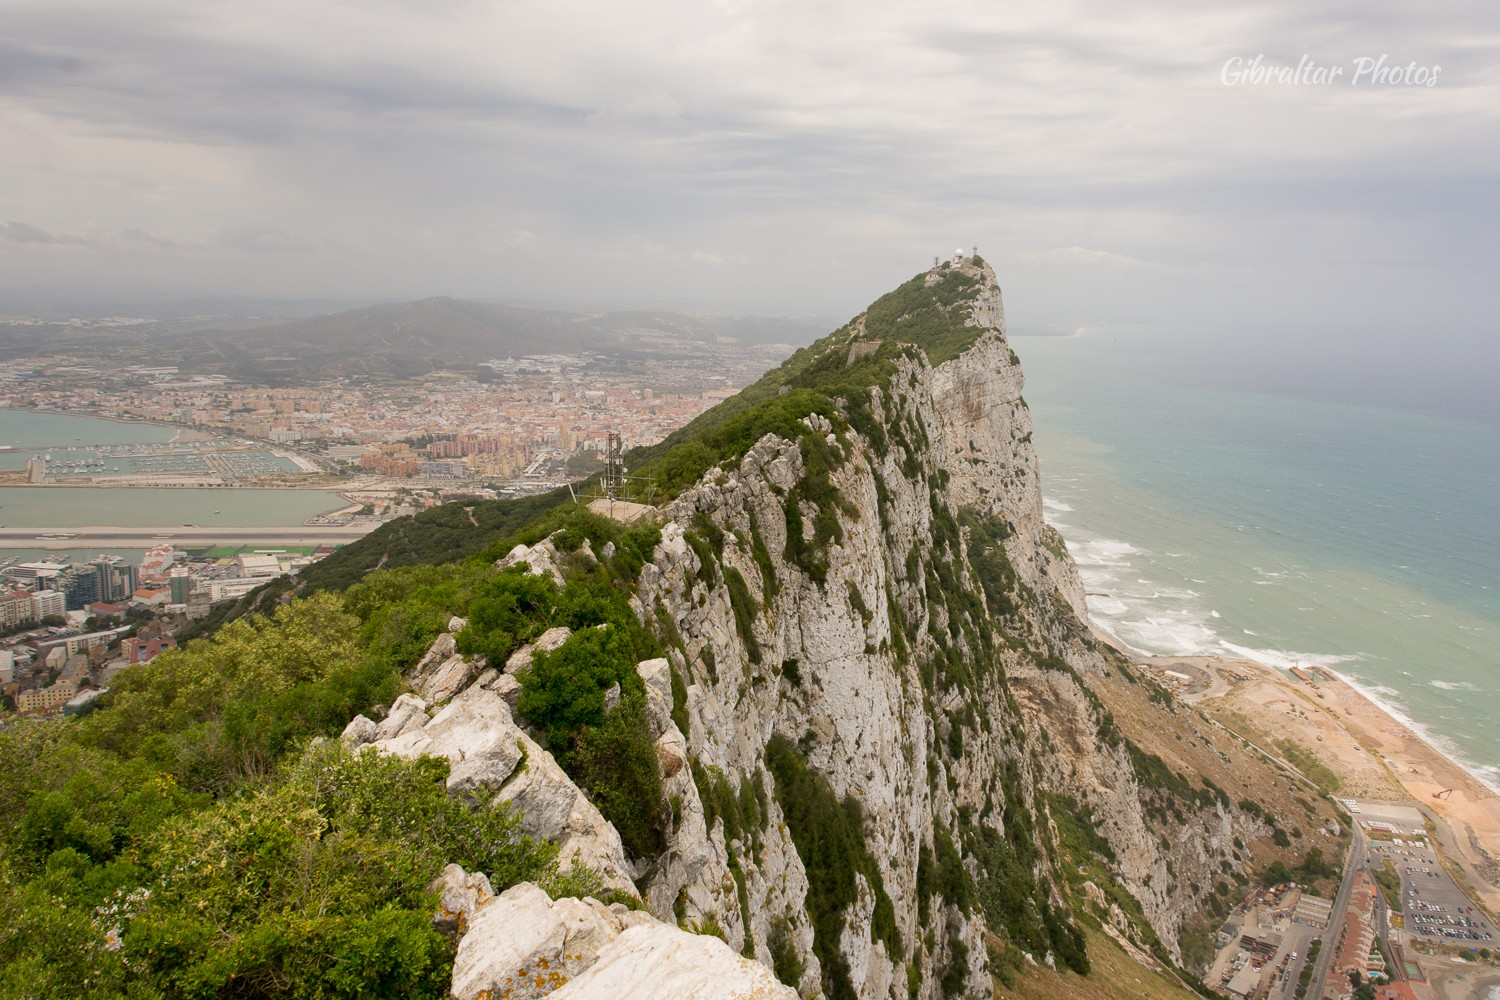 gibraltar-top-rock-43f09b